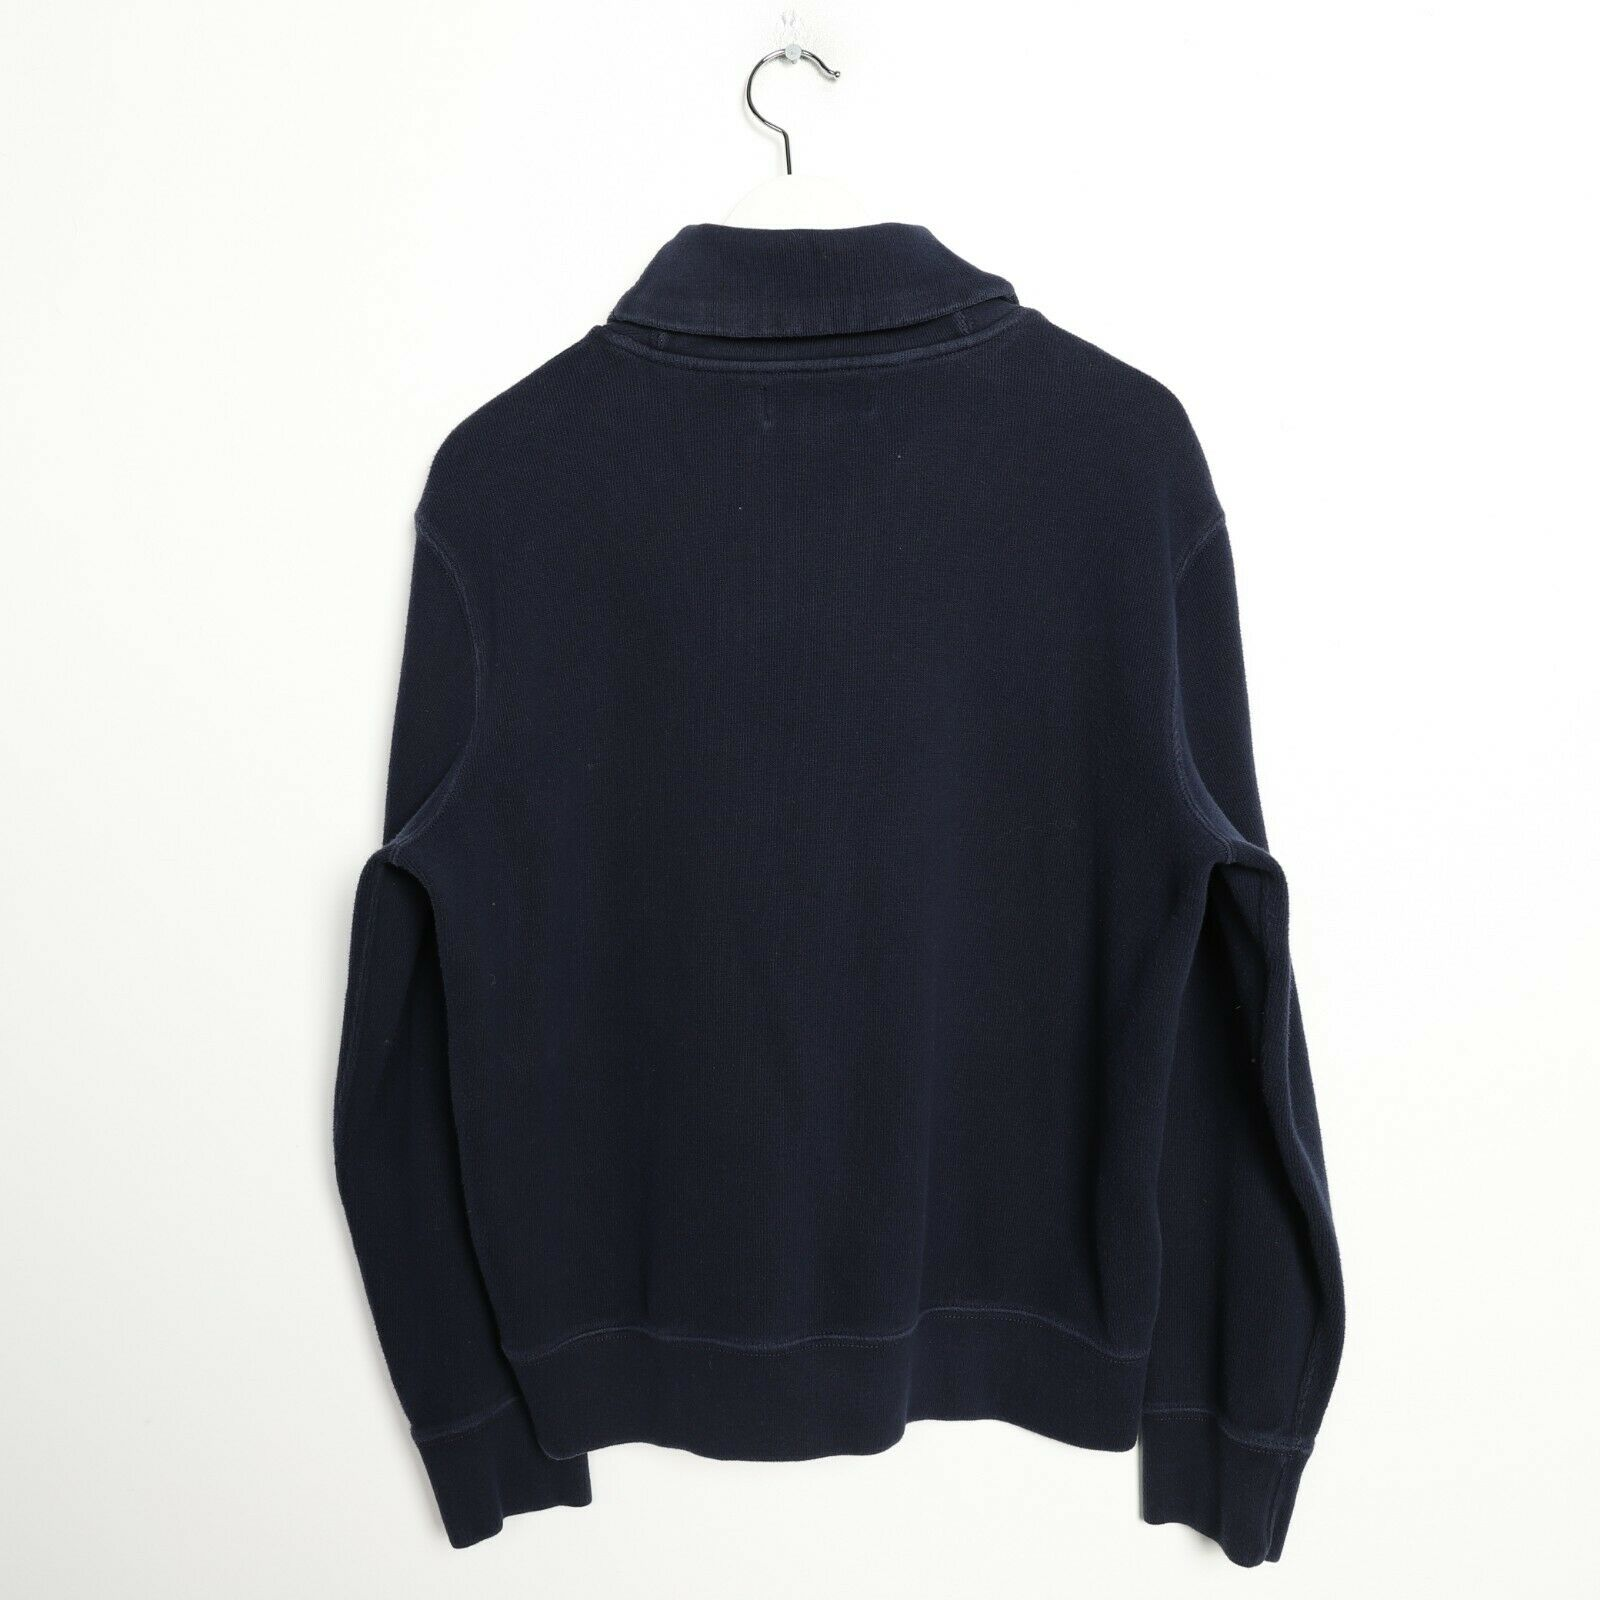 Vintage Women's RALPH LAUREN Roll Neck Sweatshirt Jumper Blue | Large L